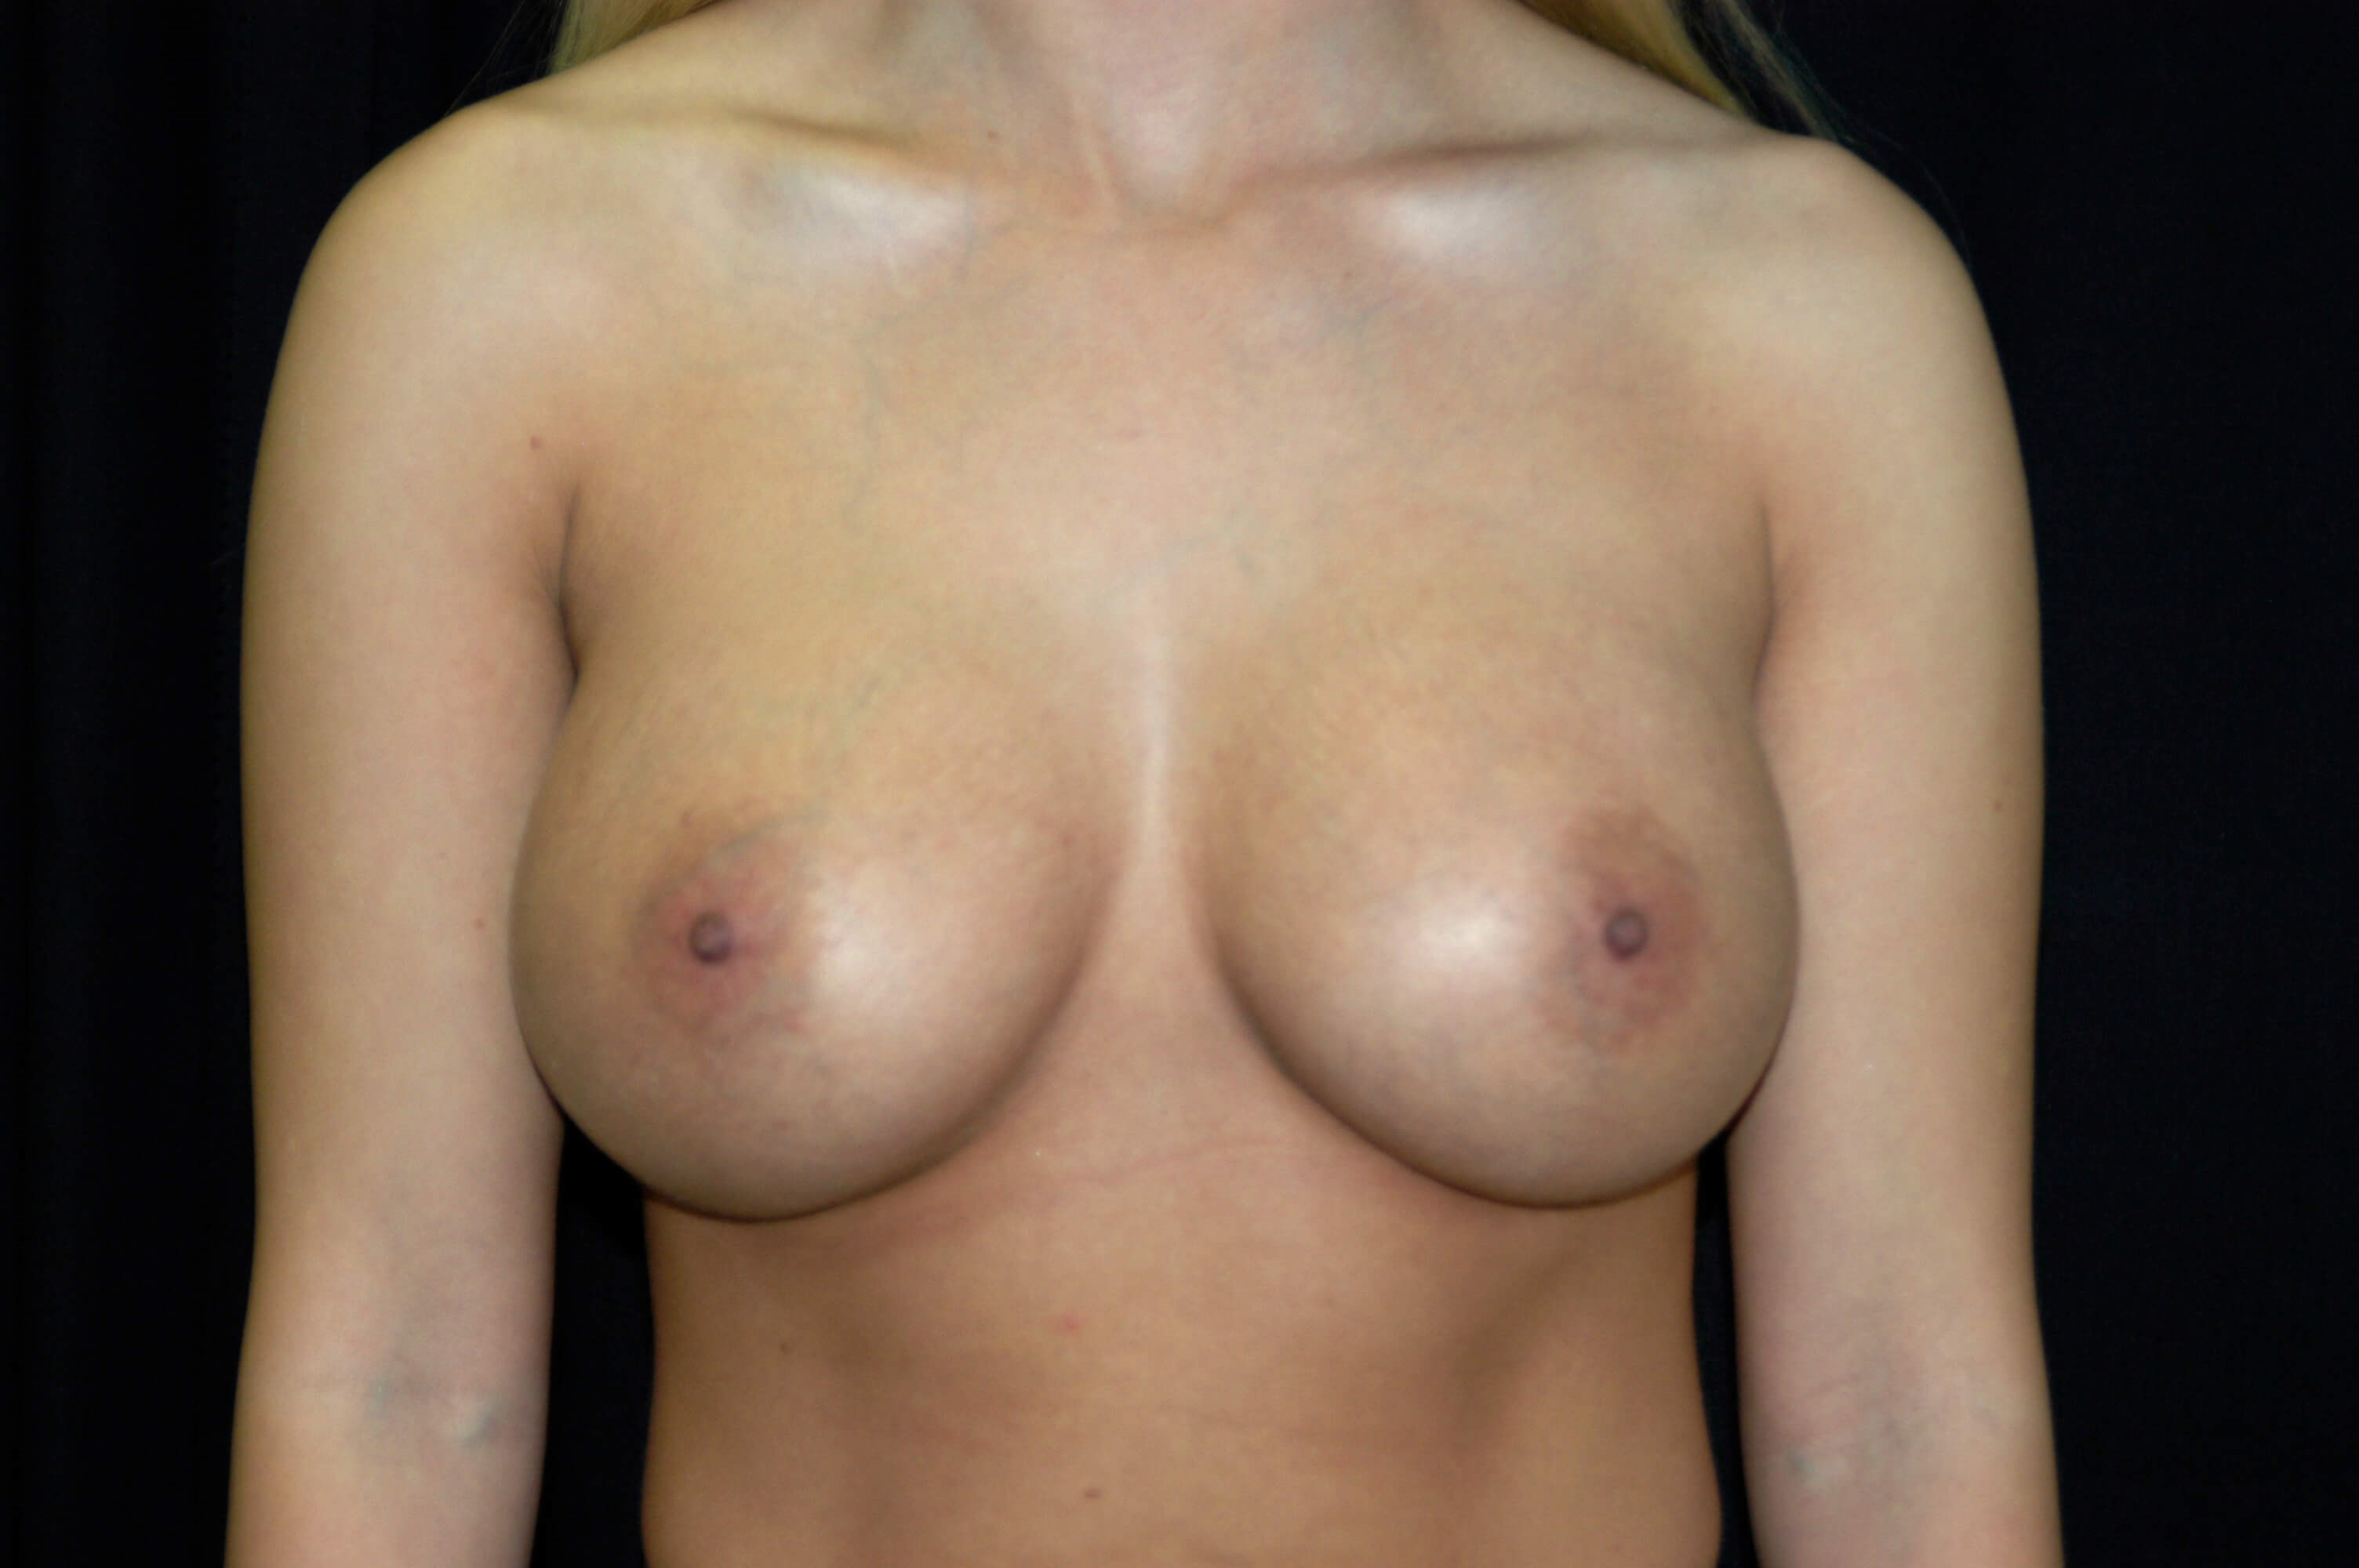 DALLAS WOMAN HAS BREAST IMPLANT REVISION TO ENHANCE FULLNESS/SHAPE OF BREAST